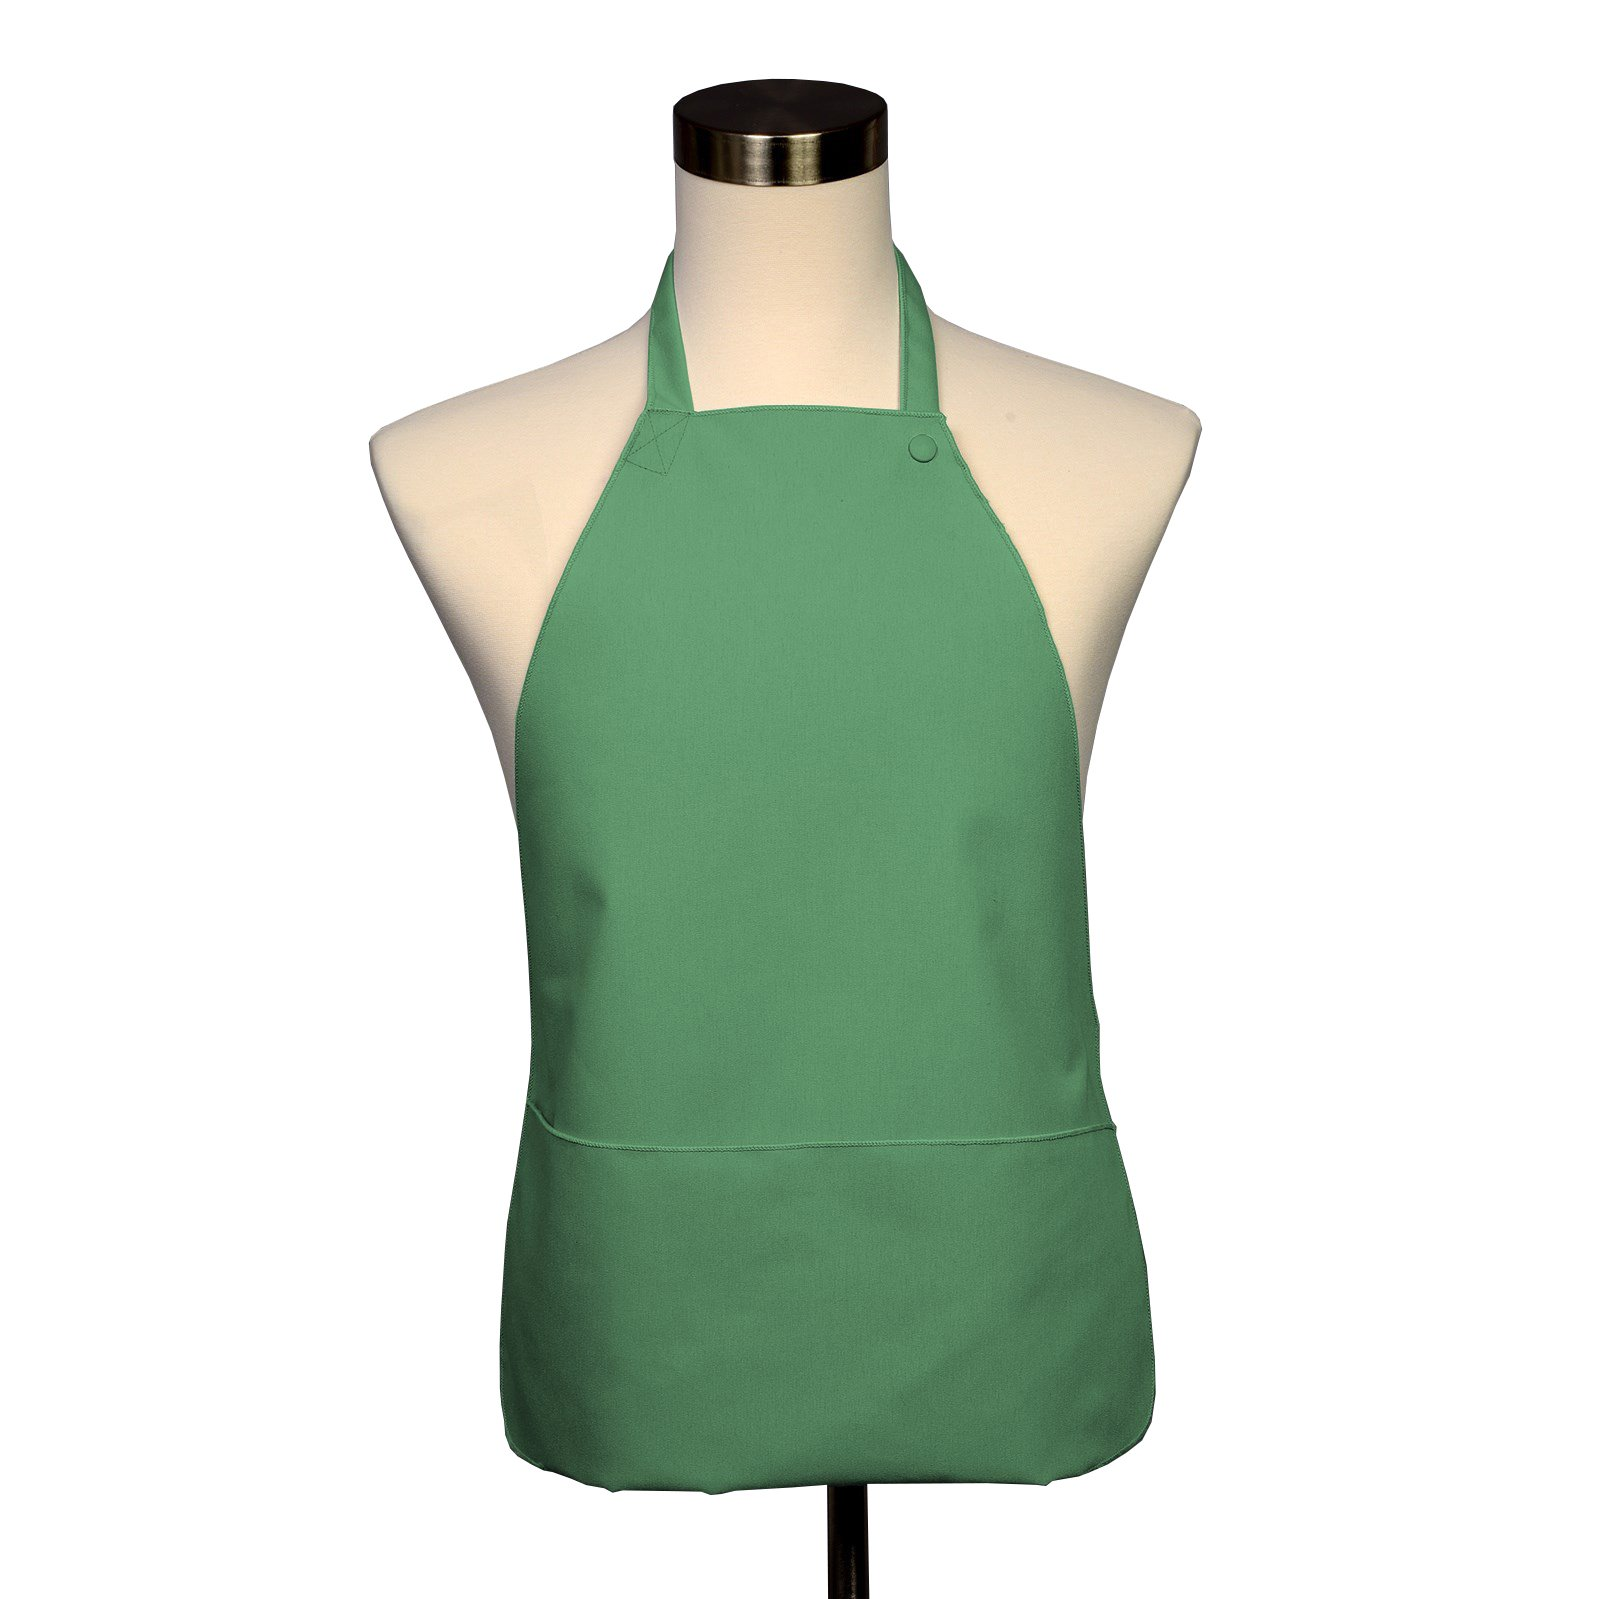 Adult Bib 10 Pack - Covered with Care Assorted Colors Available! (Seafoam)